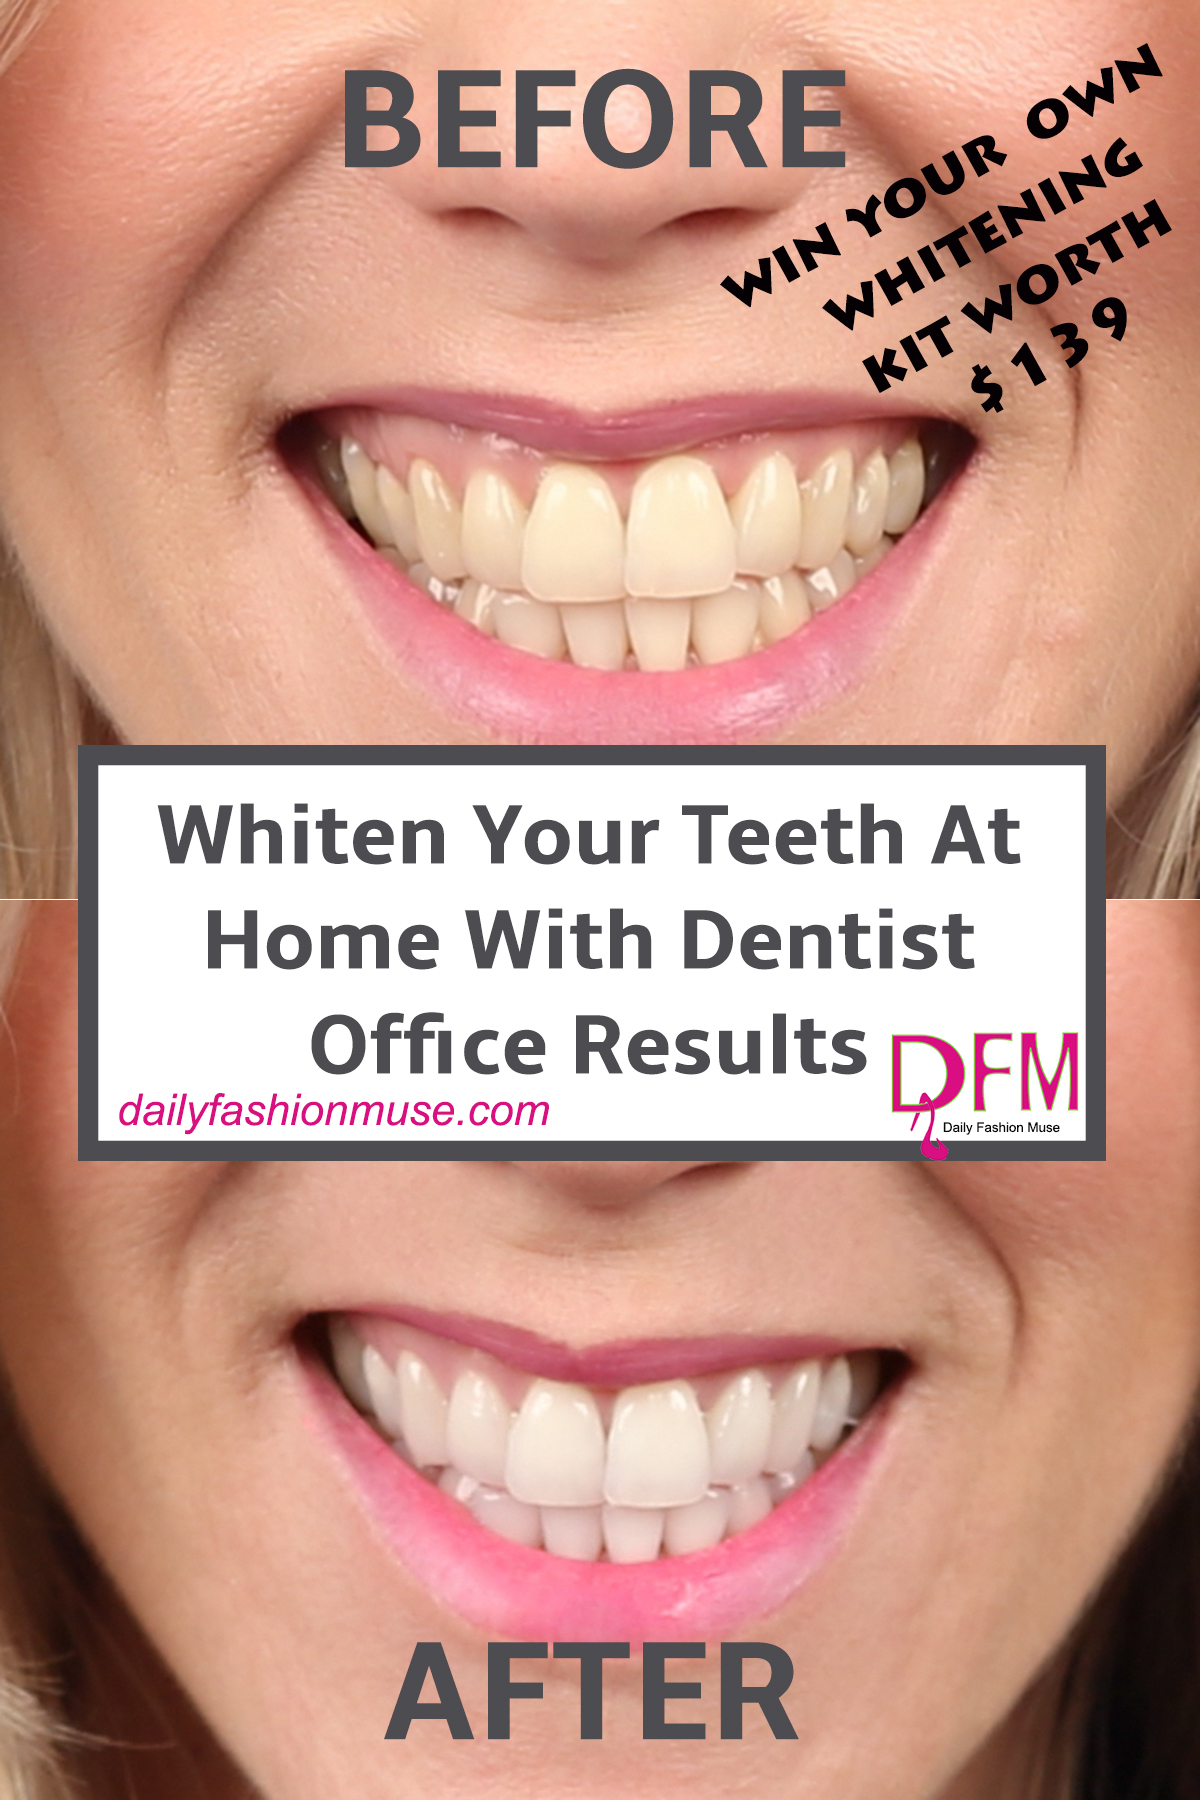 Teeth whitening at home is all the rage. Get dentist office teeth whitening results with the Brilliant Smile at home teeth whitening kit. Click through to read my review and enter for a chance to win your own kit.